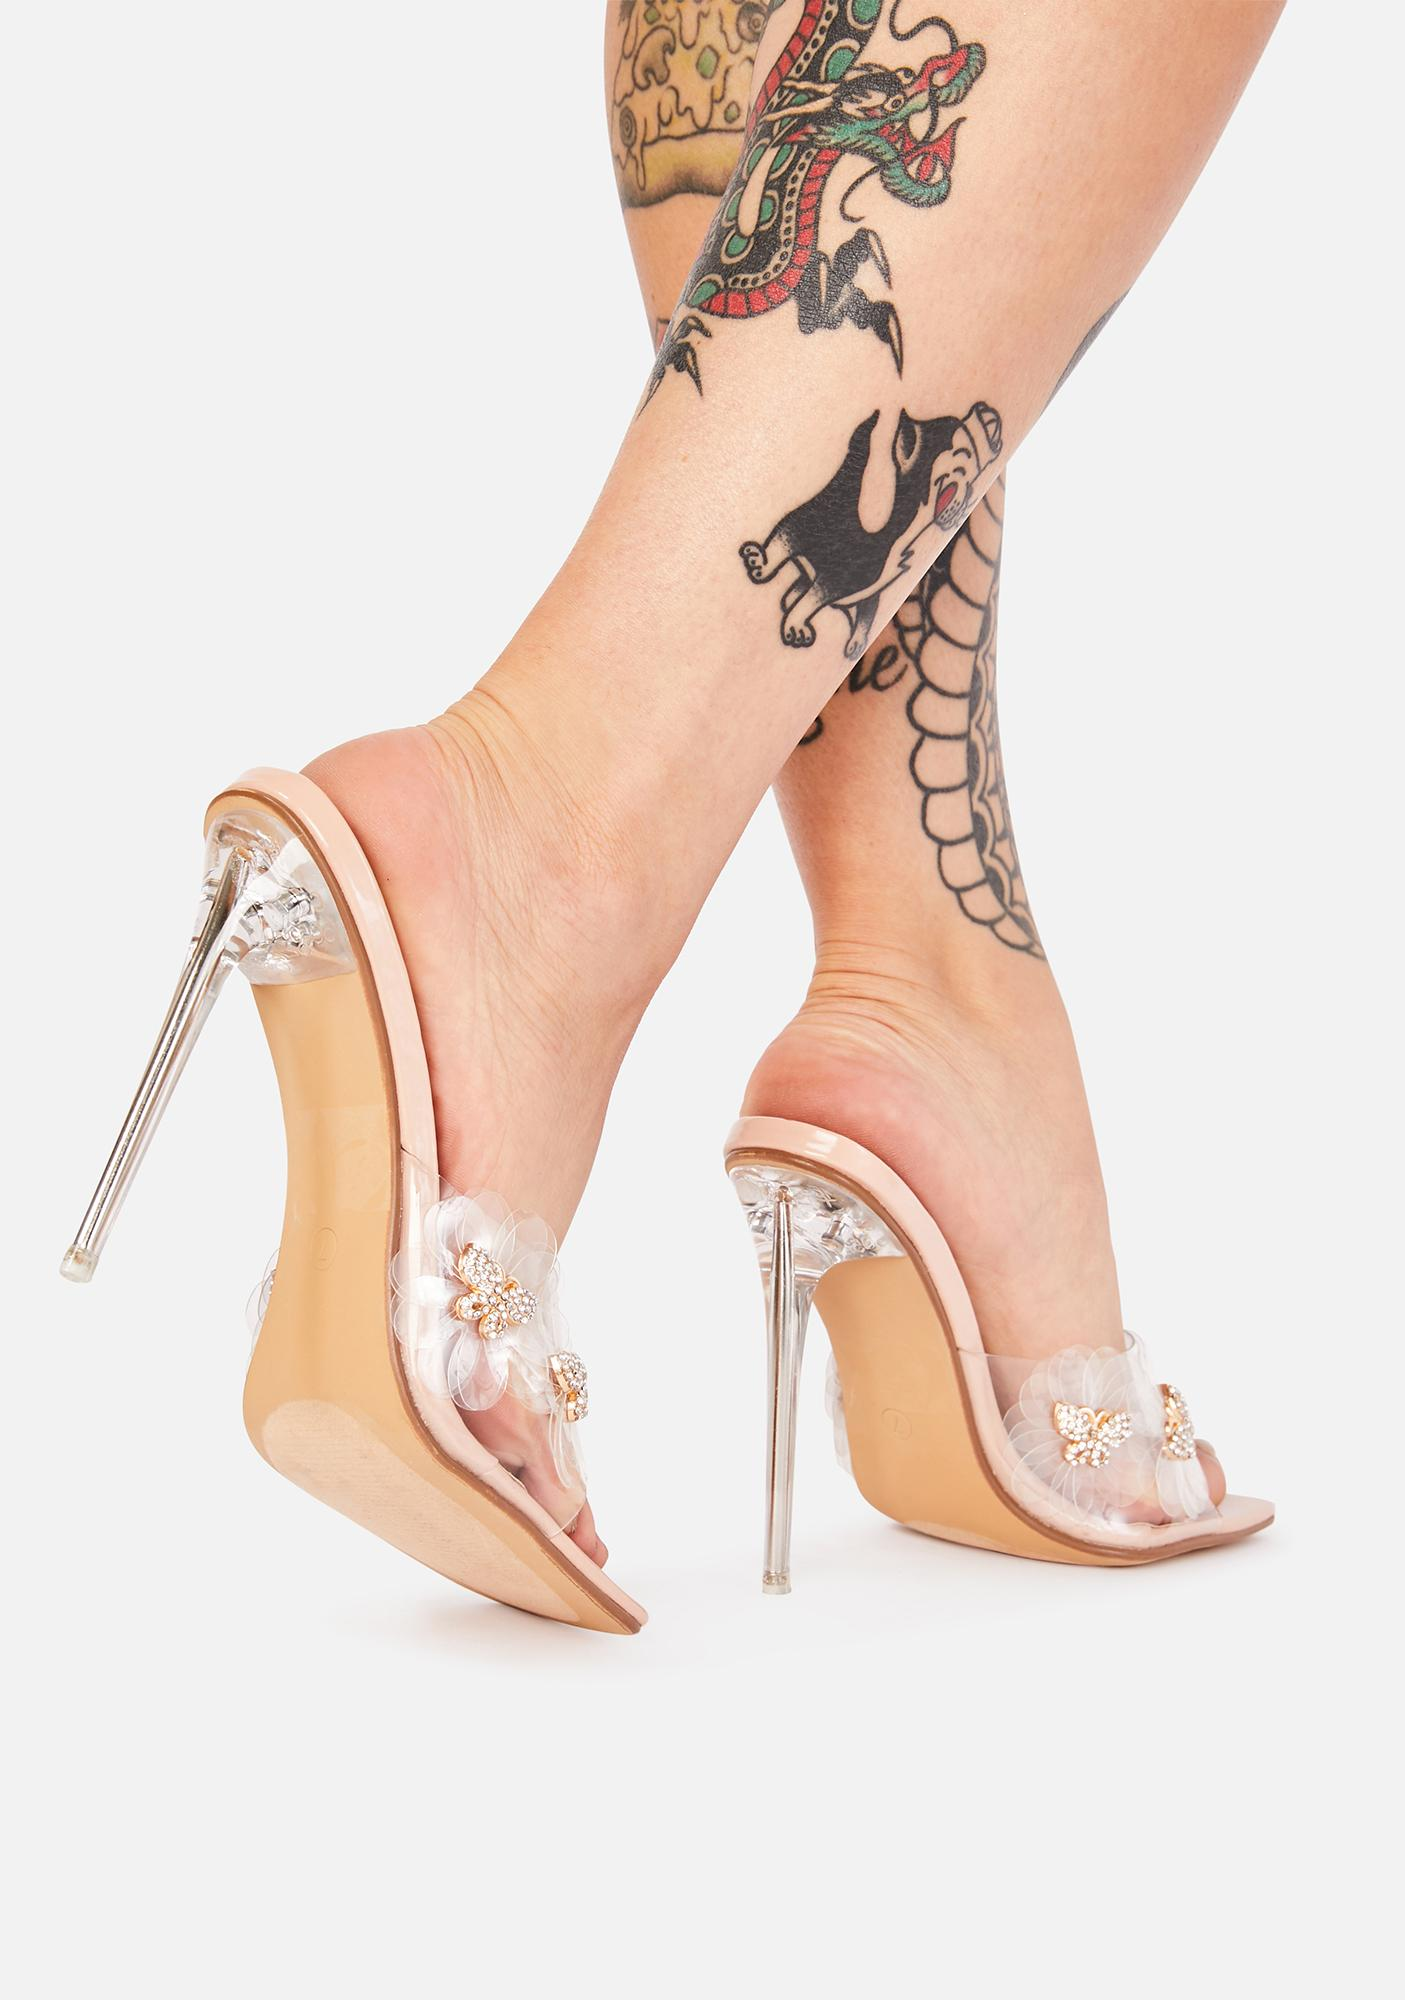 Taking Flight Stiletto Heels